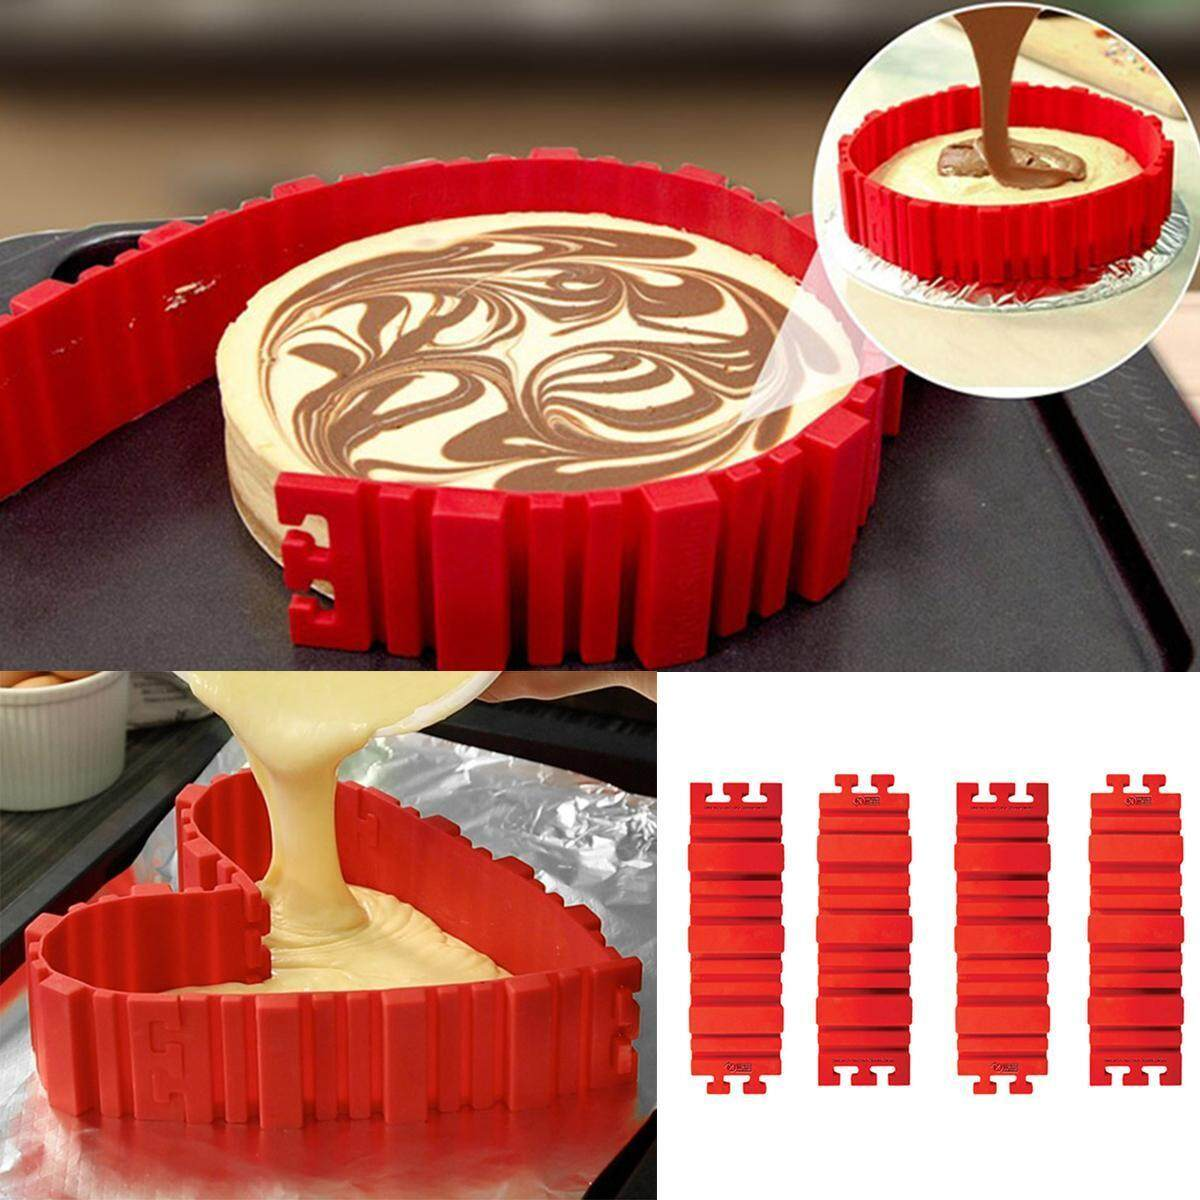 Kuchen Form 4pcs Nonstick Silikon Kuchen Magic Bake Snakes Diy Kuchen Form Backen Tools Tray